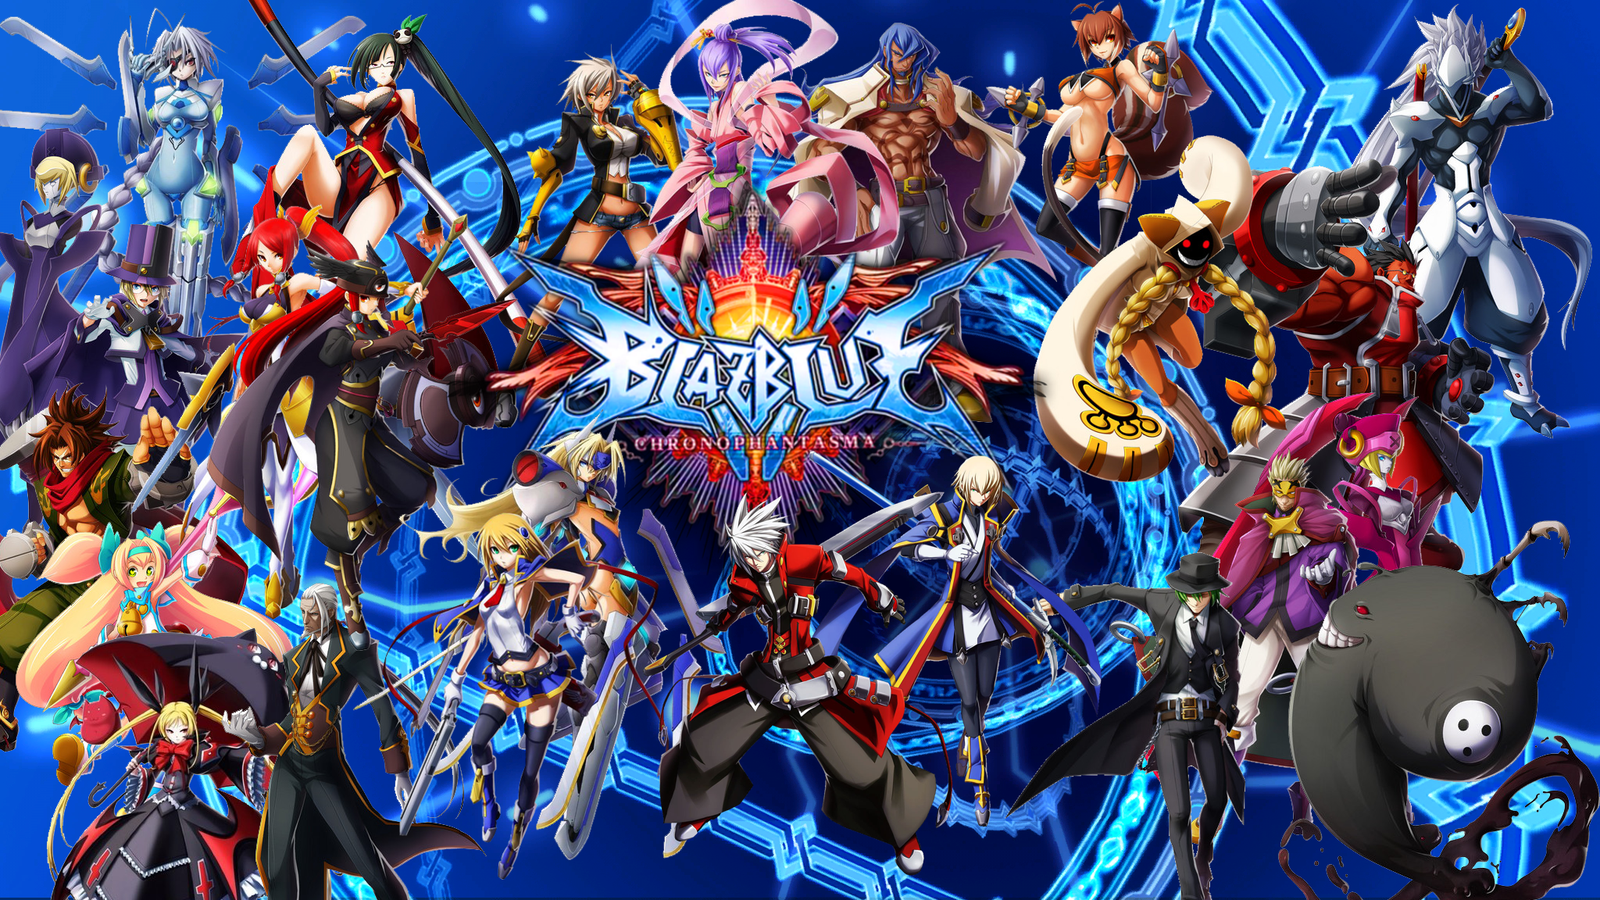 http://www.true-gaming.net/home/wp-content/uploads/2014/12/Blazblue_chrono_phantasma_cover_by_brunolin-d5m1mfq.png